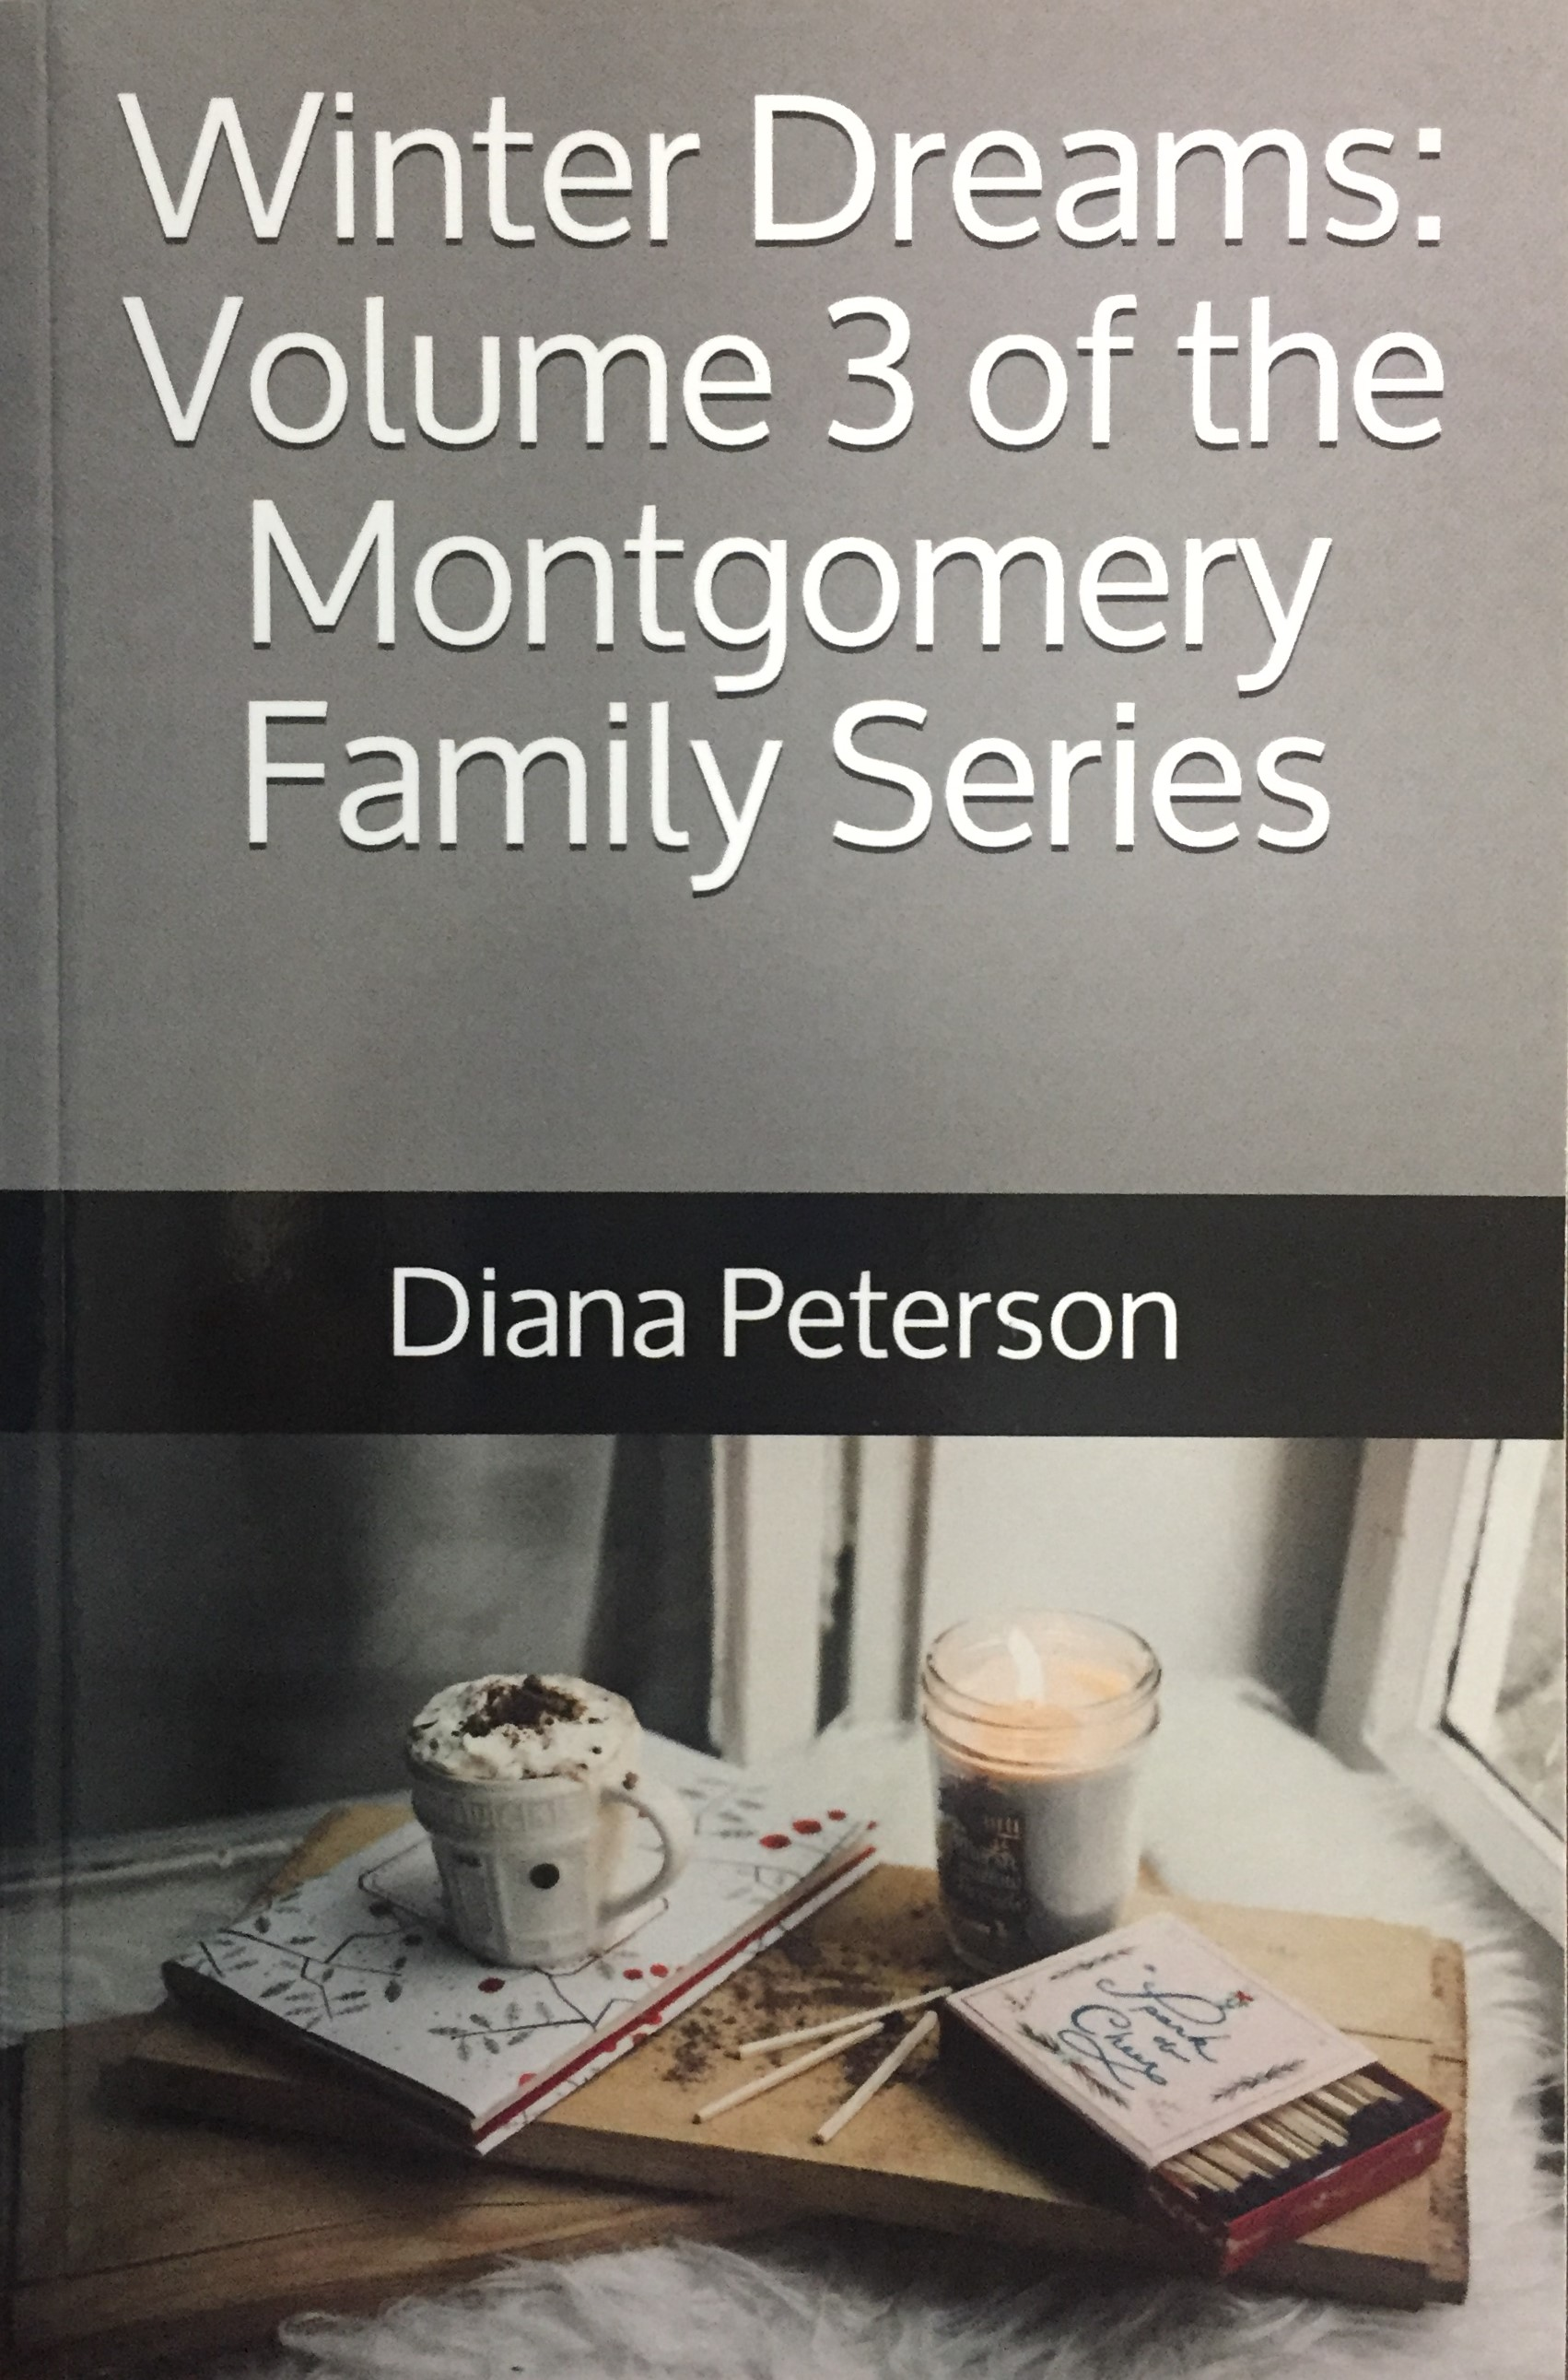 Winter Dreams: Montgomery Family Series Volume 3